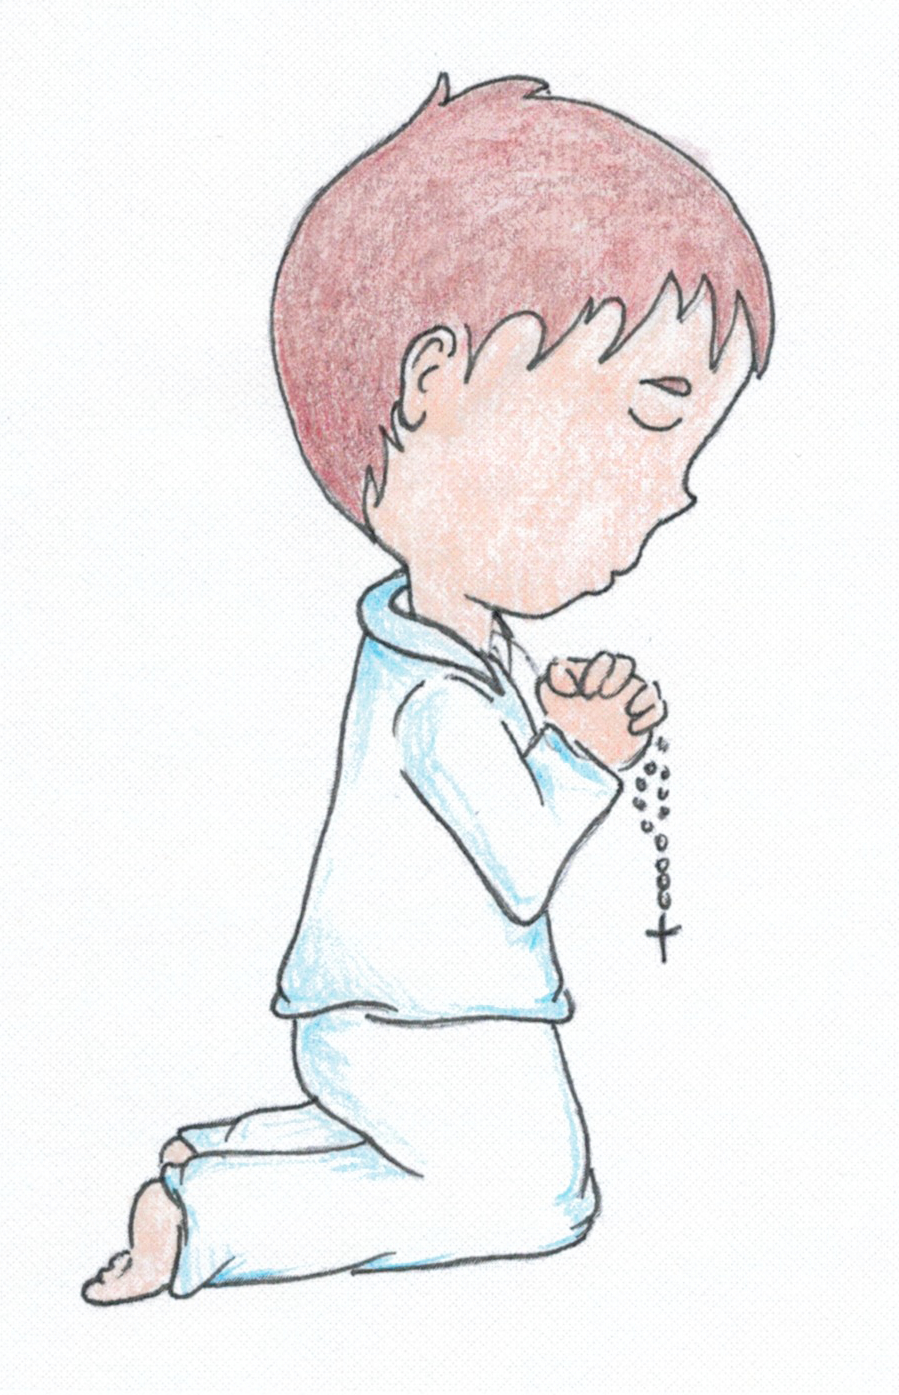 Praying Boy - Kneeling   Personalize the hair style and color.